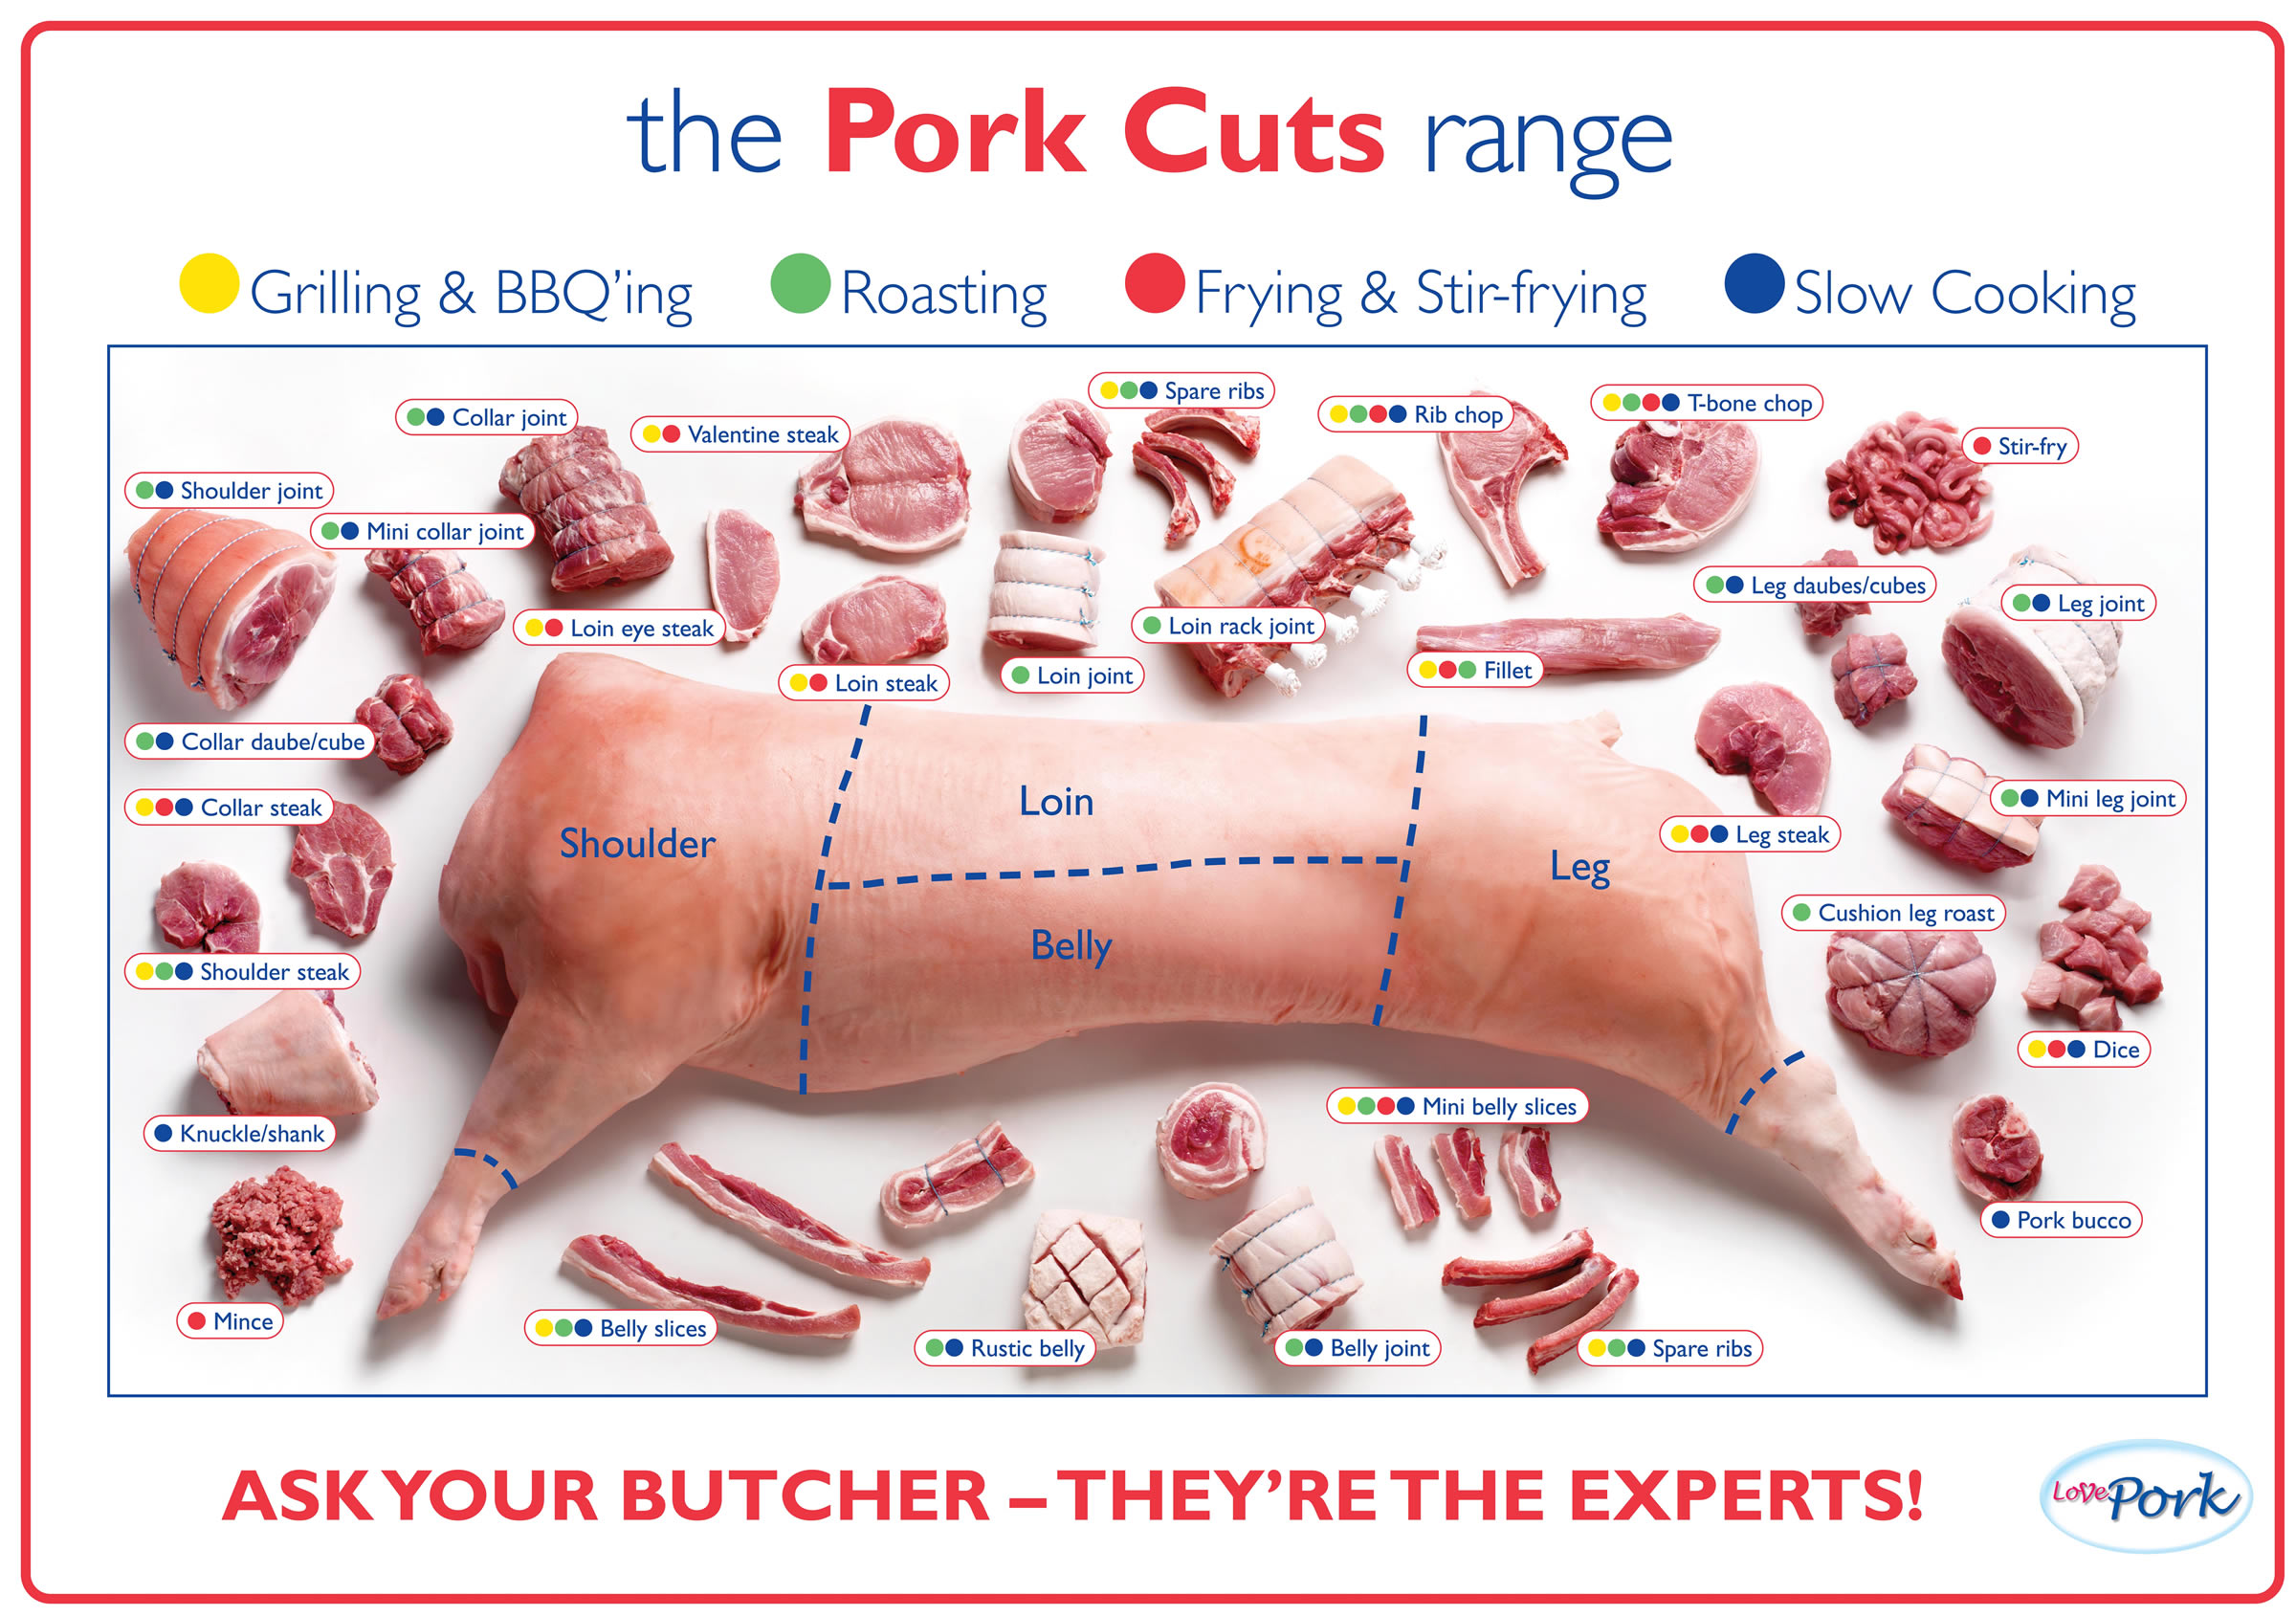 Butchering your own farm raised pig in 7 simple steps.